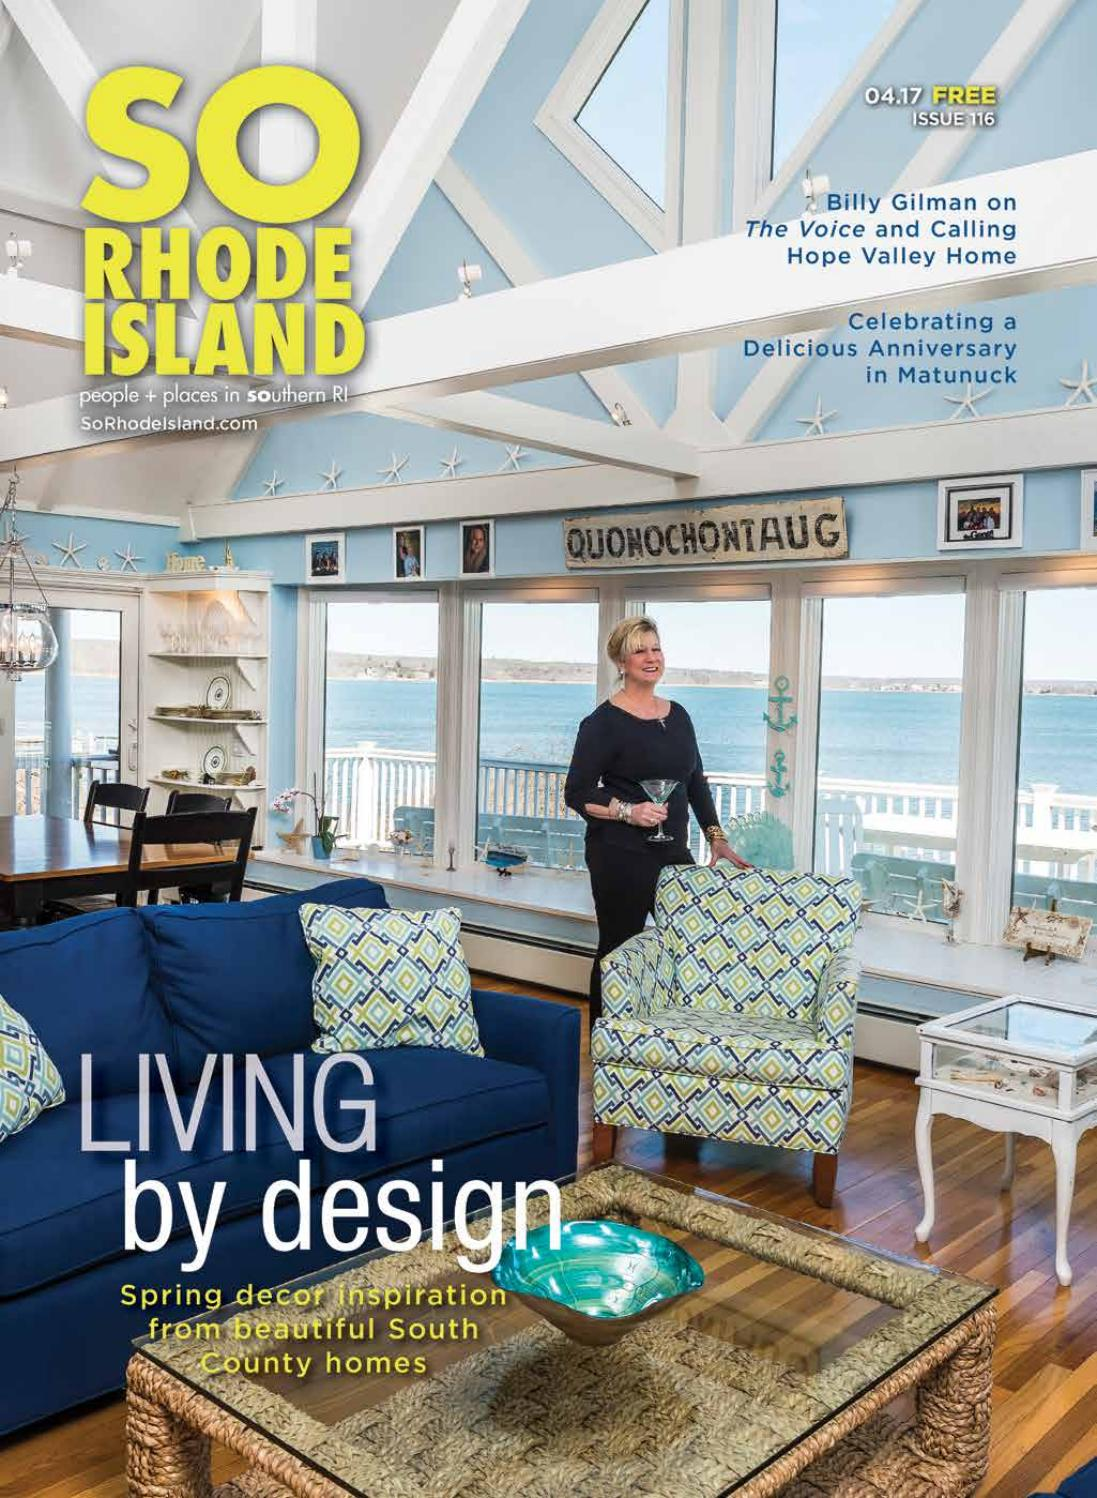 SO Rhode Island April 2017 by Providence Media - issuu on tuscan table ideas, small tuscan kitchen ideas, tuscan foyer ideas, tuscan kitchens with islands, tuscan kitchen window ideas, rustic island ideas, tuscan kitchen range hoods, tuscan kitchen sink islands, tuscan painting ideas, tuscan kitchen design, tuscan kitchen paint ideas, tuscan balcony ideas, tuscan kitchen appliances, tuscan kitchen flooring ideas, tuscan formal dining ideas, u-shaped kitchen remodeling ideas, tuscan living room ideas, tuscan kitchen backsplash ideas, tuscan kitchen look, tuscan themed kitchen ideas,